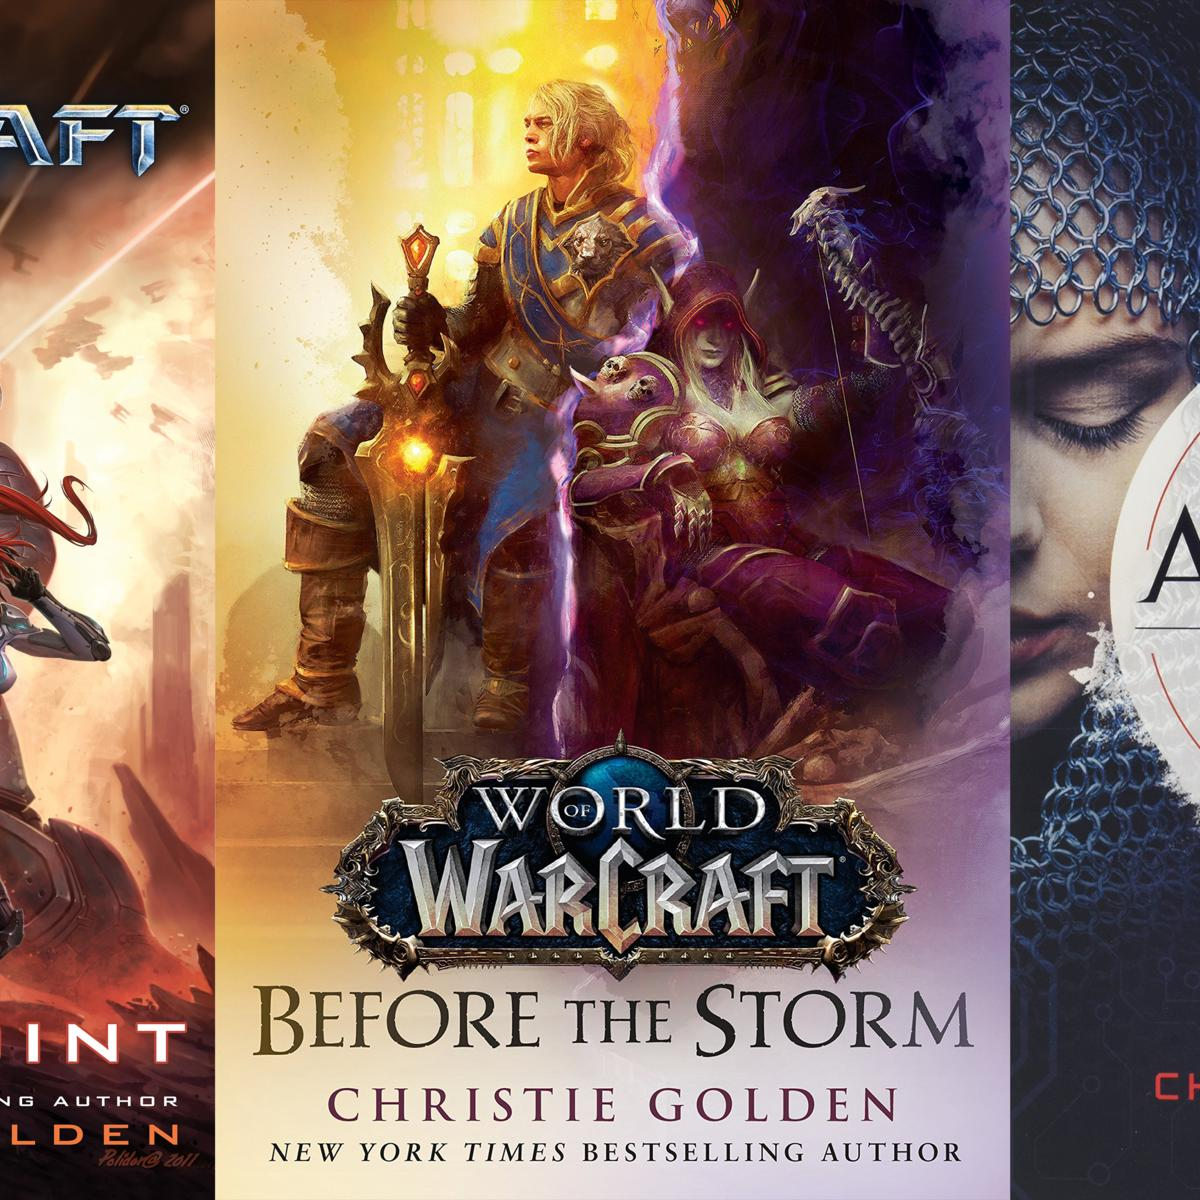 Christie Golden covers